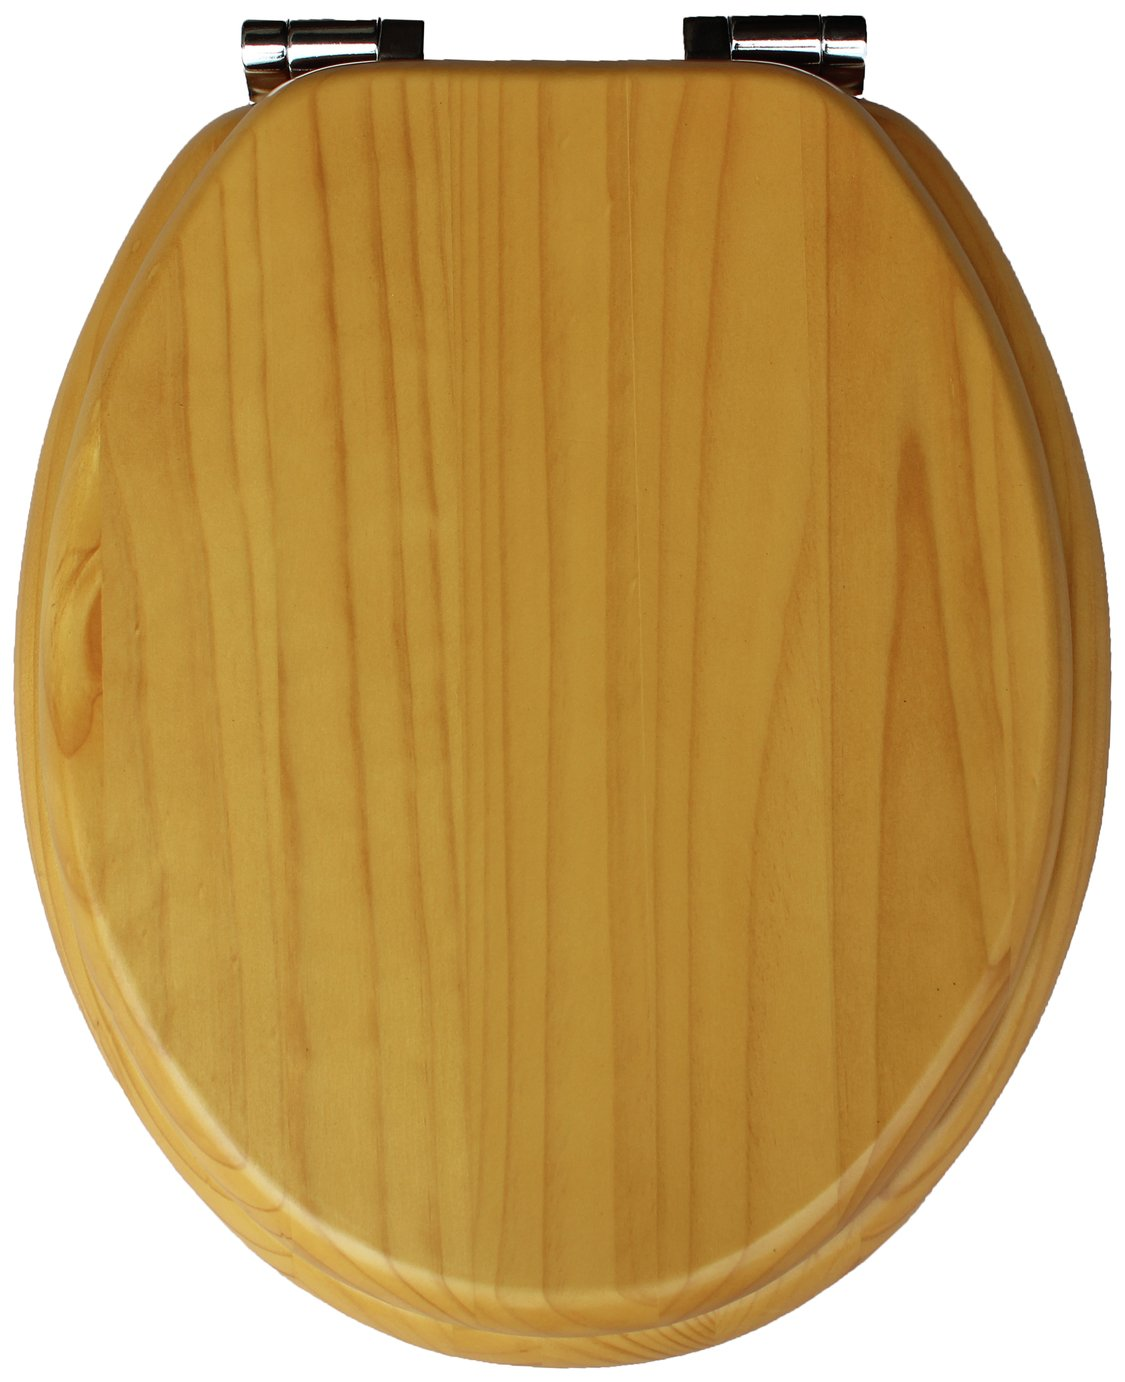 Argos Home Solid Wood Slow Close Toilet Seat - Light Oak